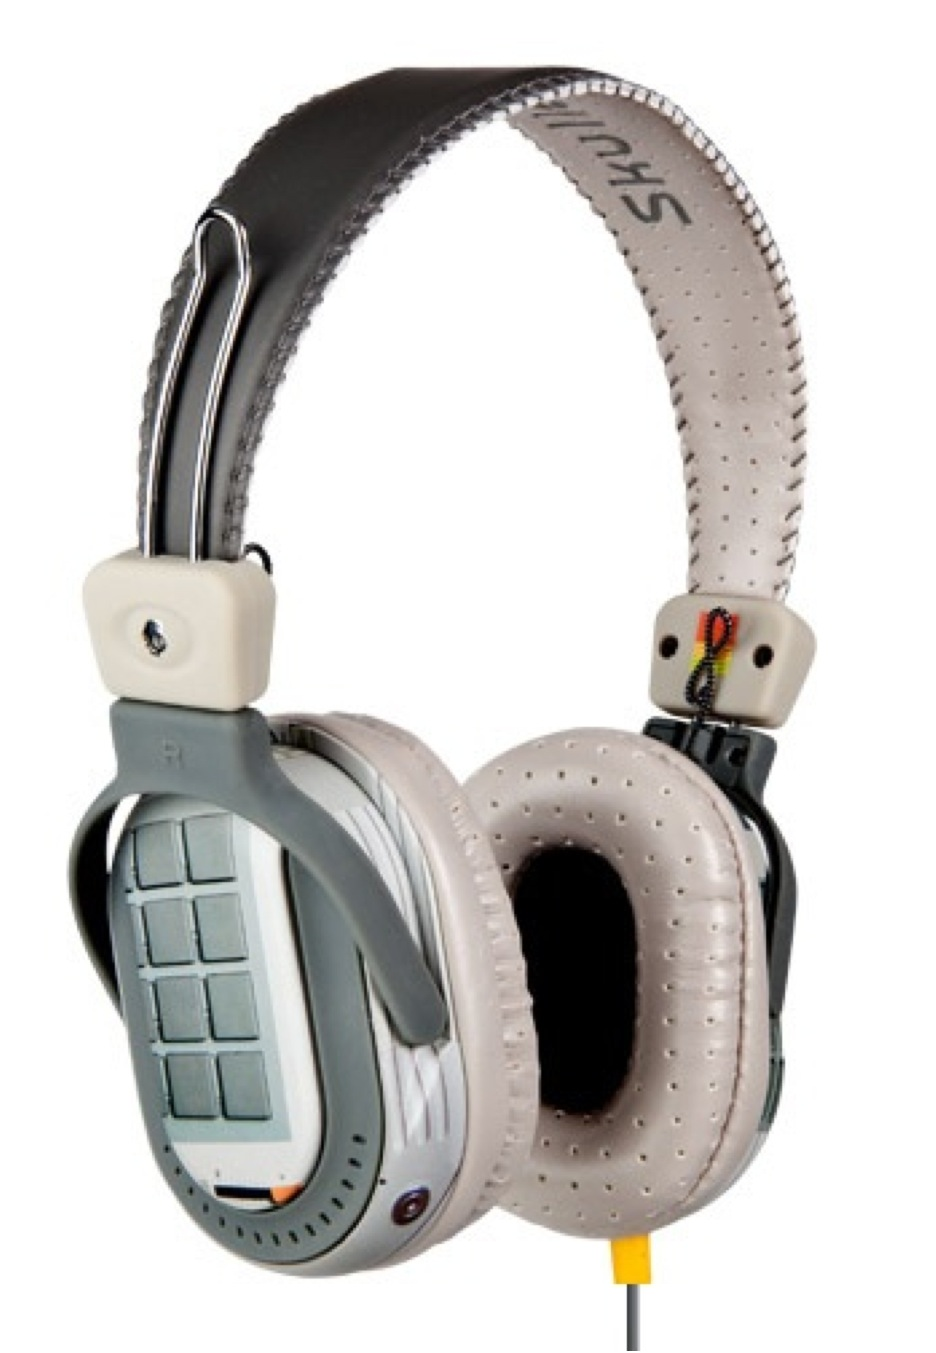 Free delivery and returns on eligible orders. Buy Skullcandy SCS6HTW-K Hesh 3 Bluetooth Wireless Over-Ear Headphones with Microphone - Black at Amazon UK.